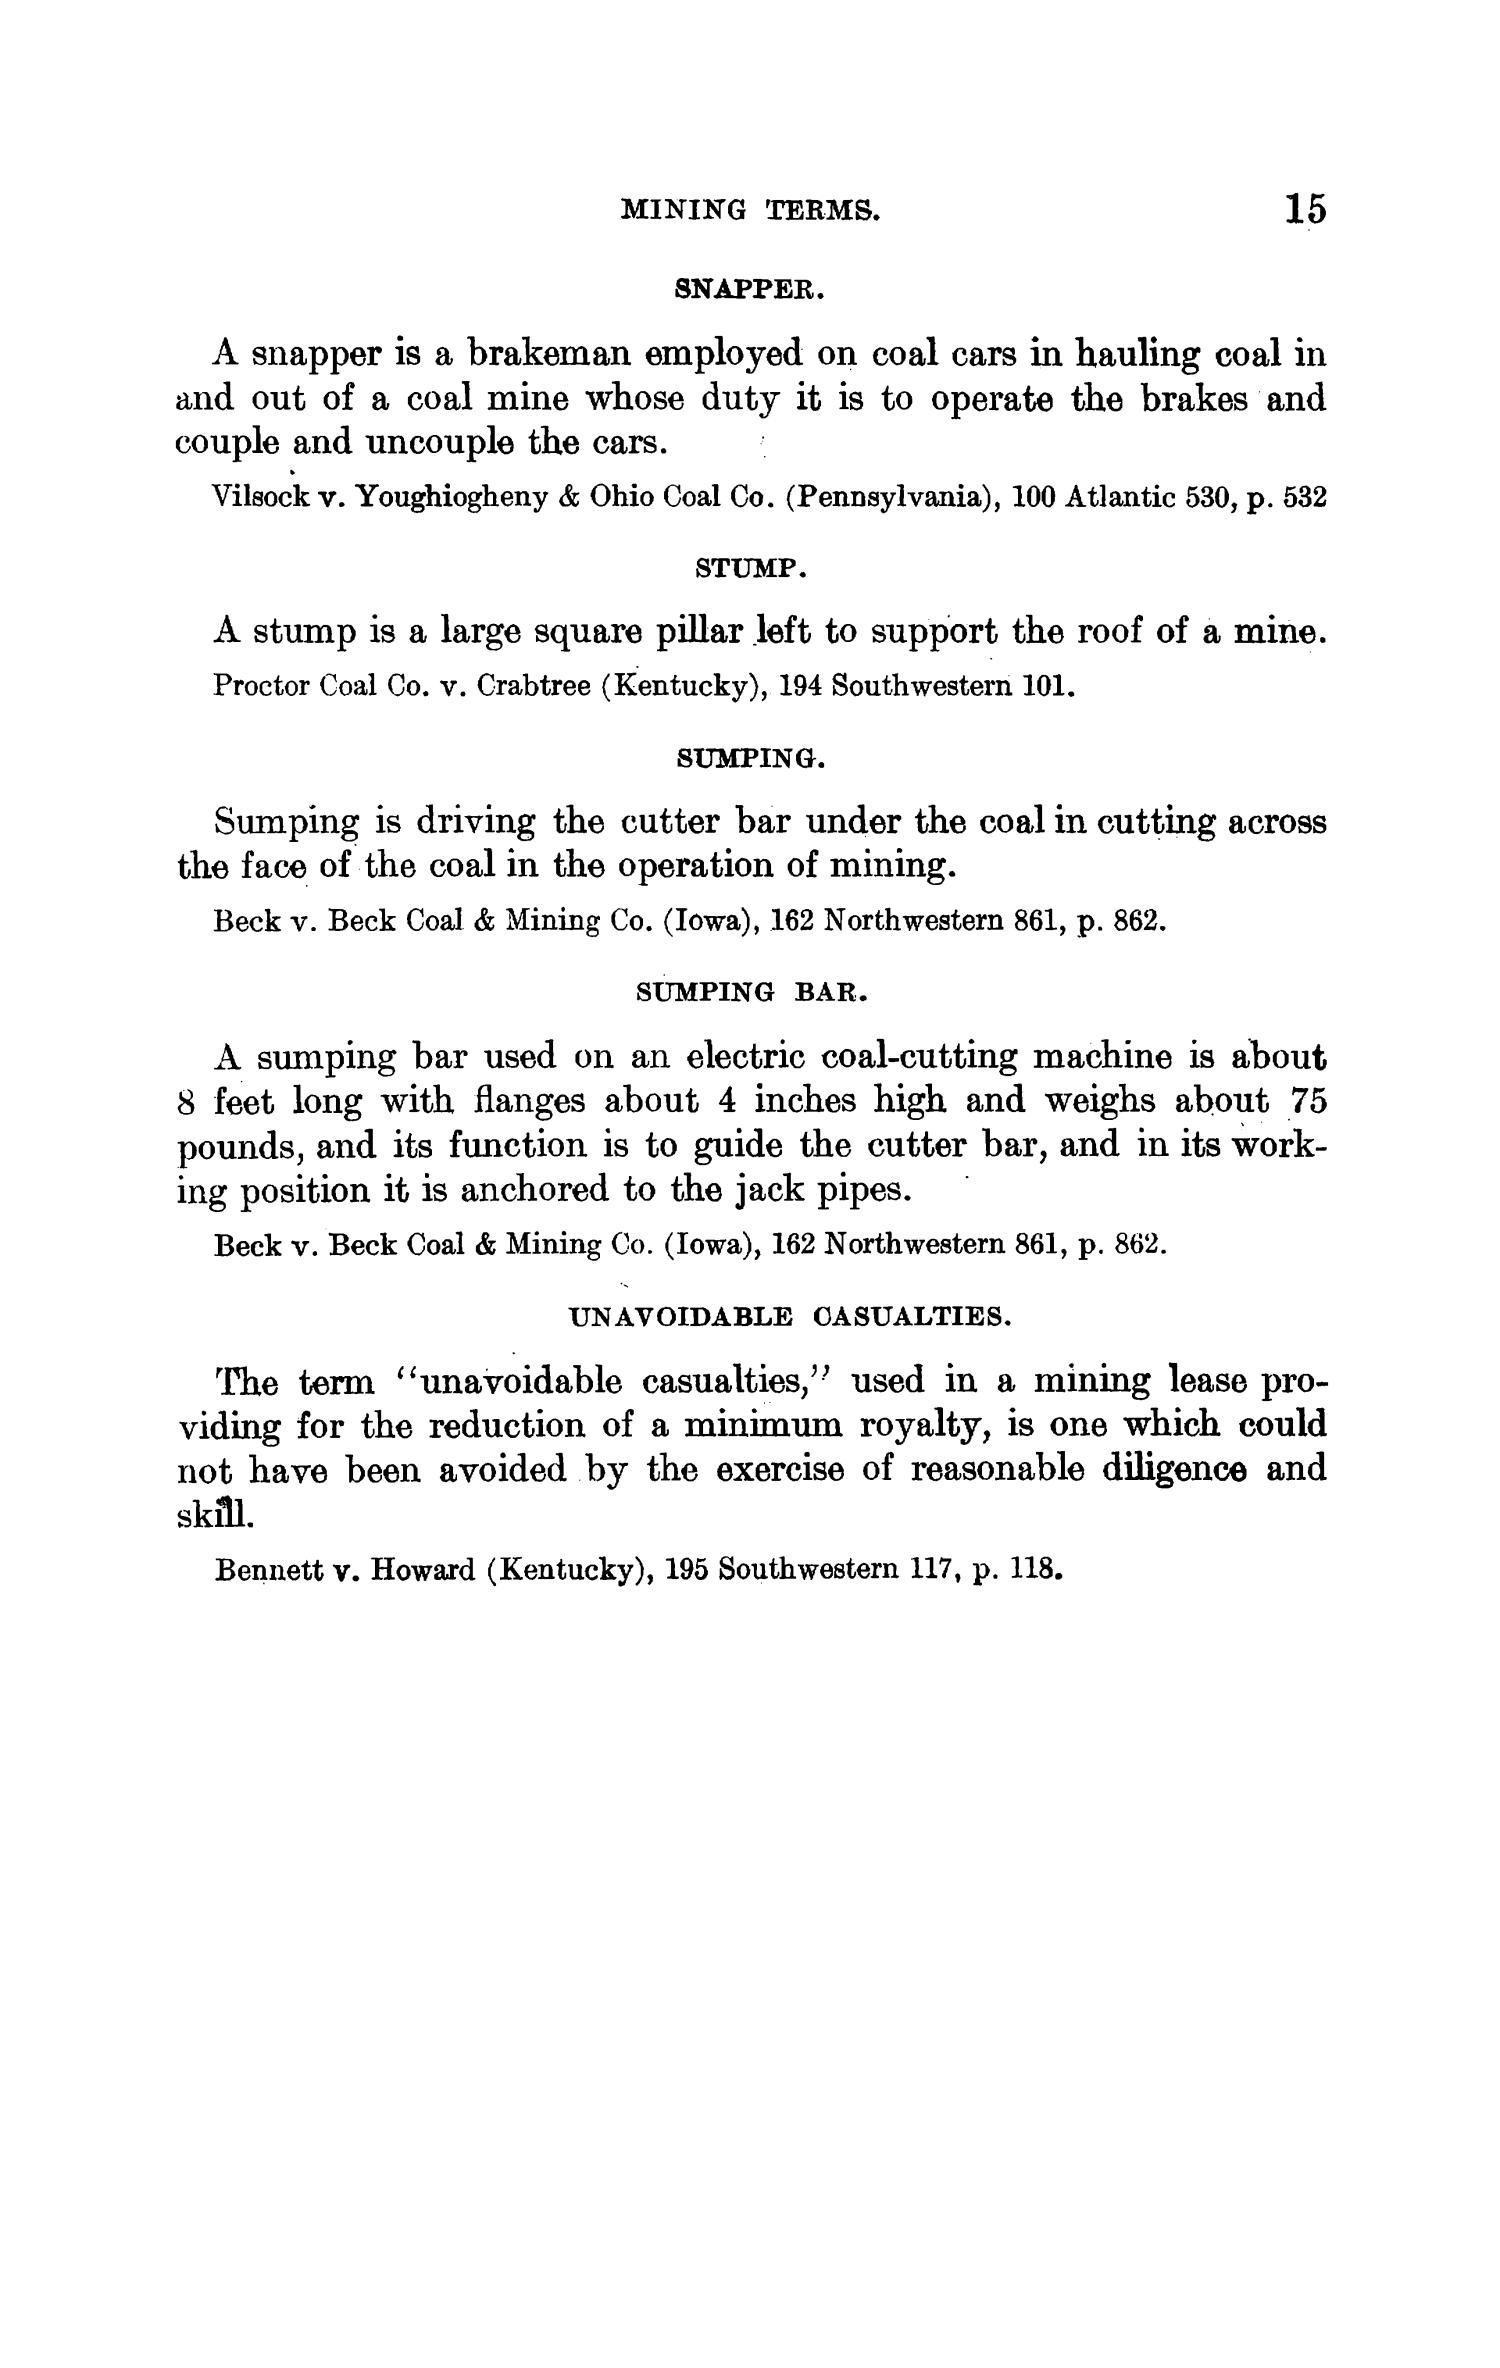 Abstracts of Current Decisions on Mines and Mining: May to August, 1917                                                                                                      15